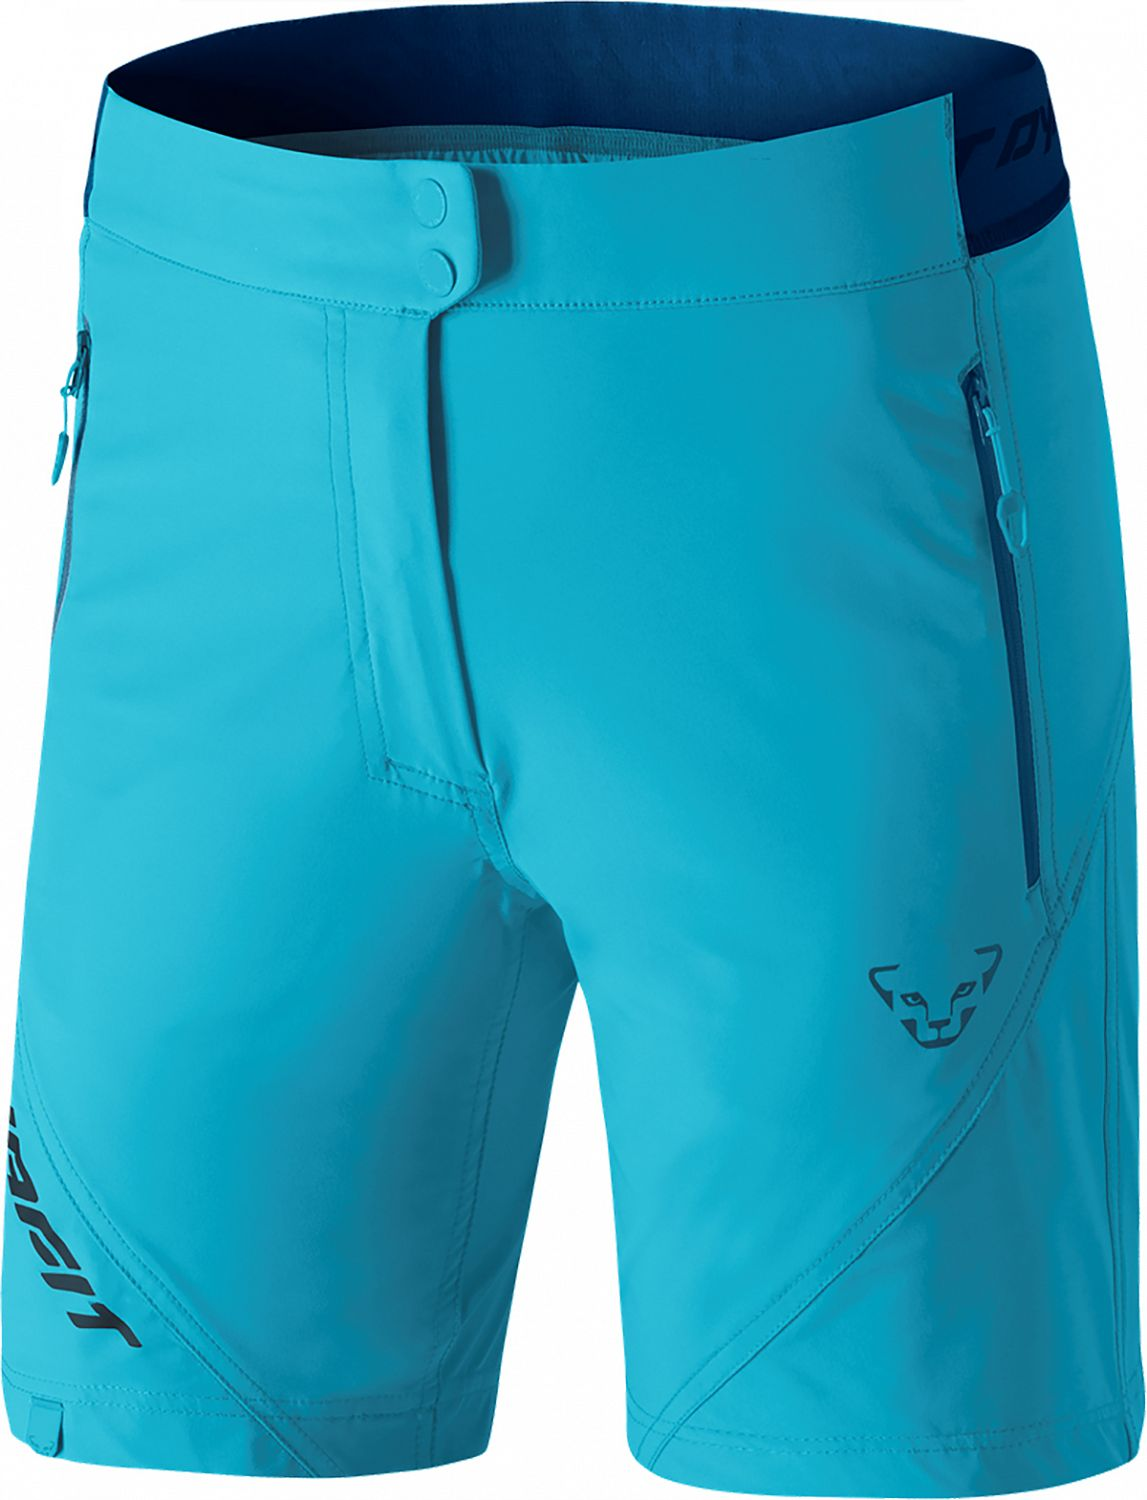 DYNAFIT Transalper Light Dynastretch Short W silvretta